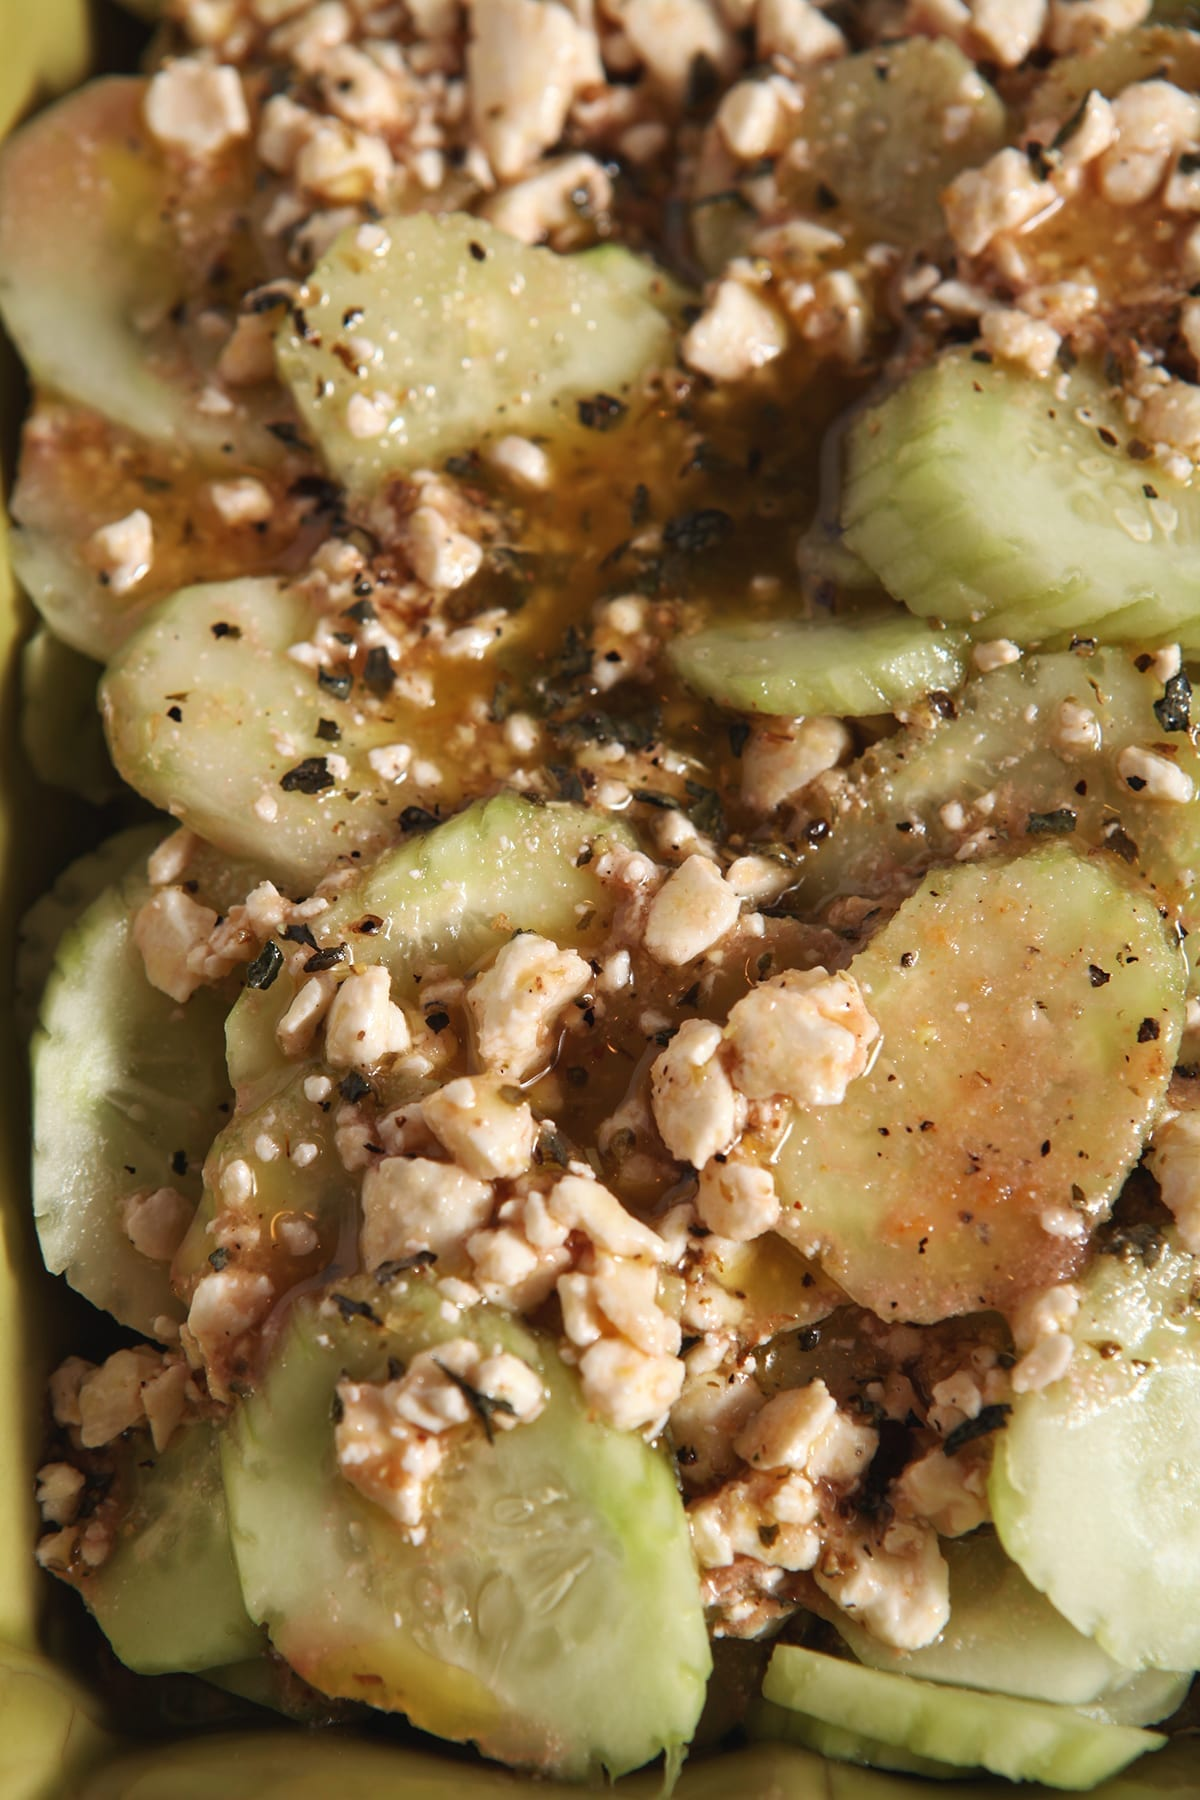 Close up of cucumbers and feta dressing in a green serving dish